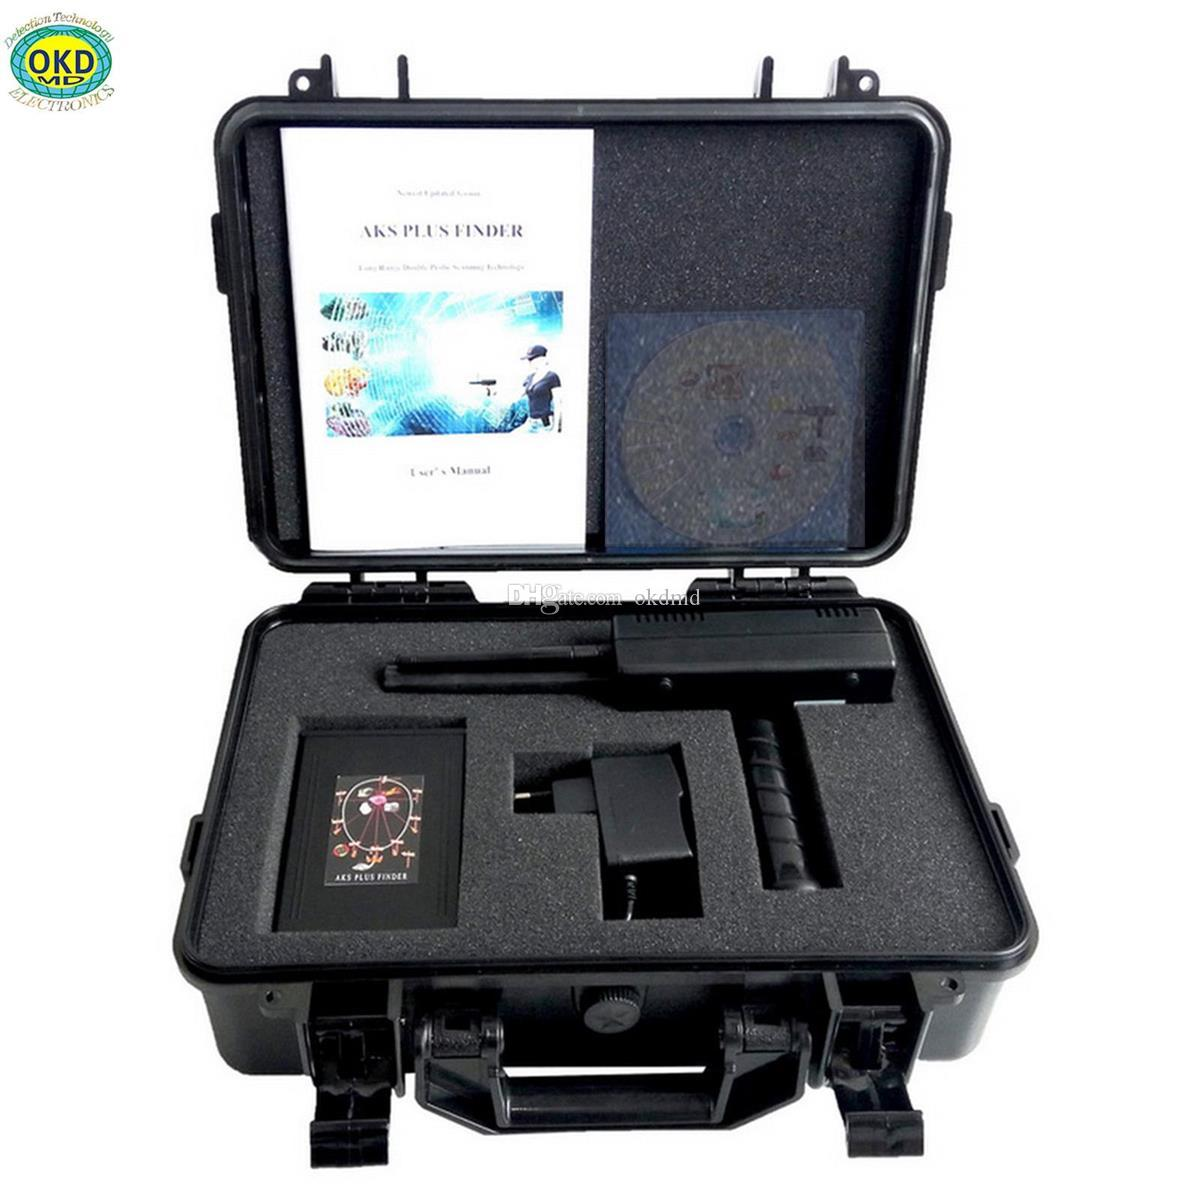 Hot selling AKS PLUS double probe 3D high sensitivity long range underground gold silver copper diamond metal detector